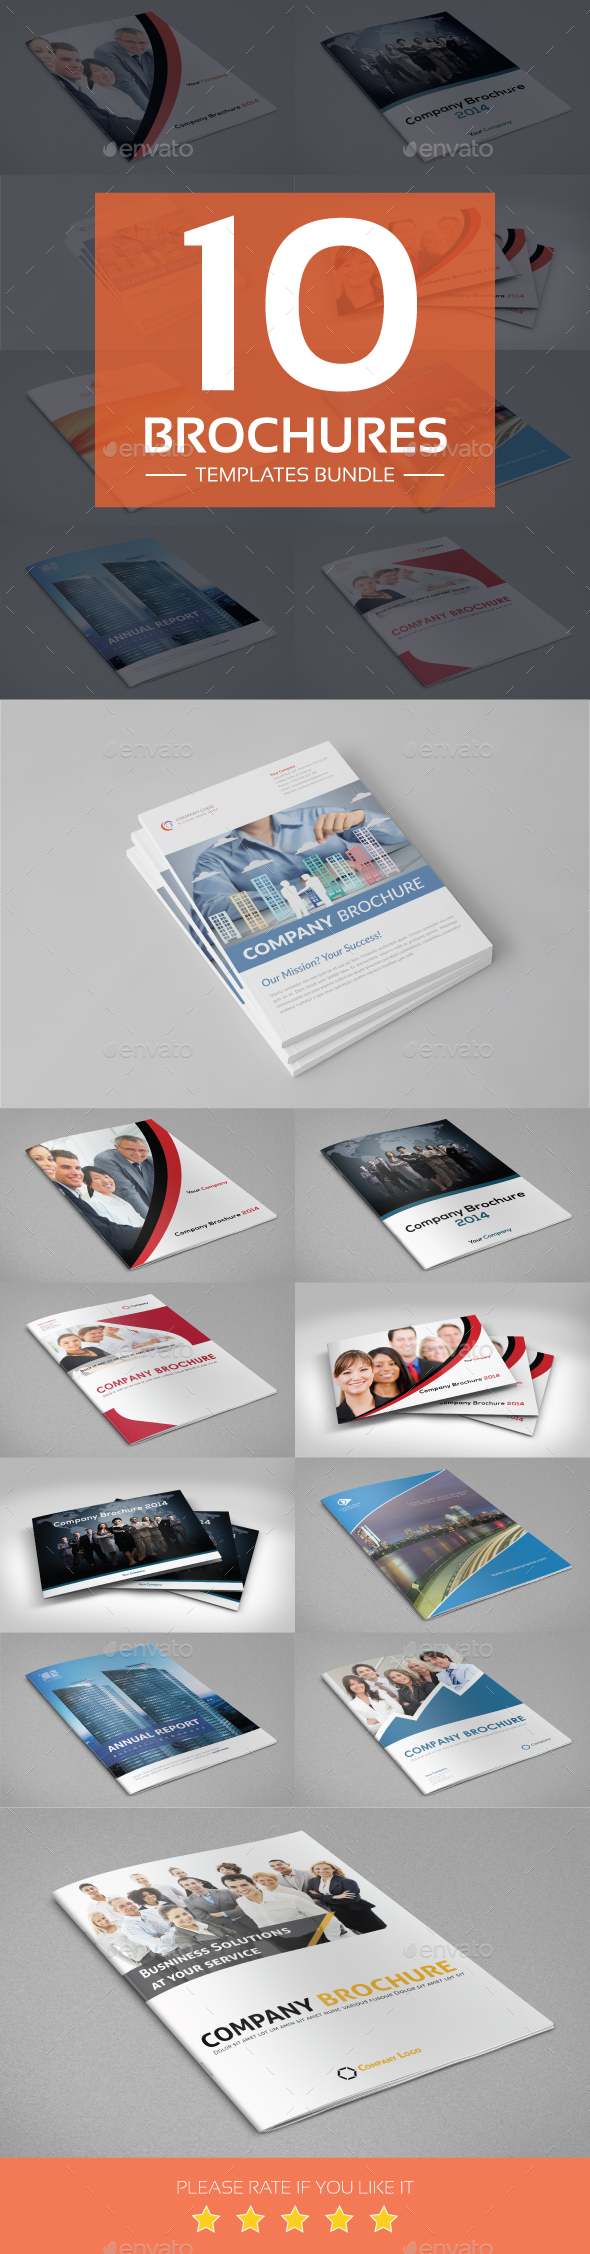 Brochures Templates Bundle - Corporate Brochures